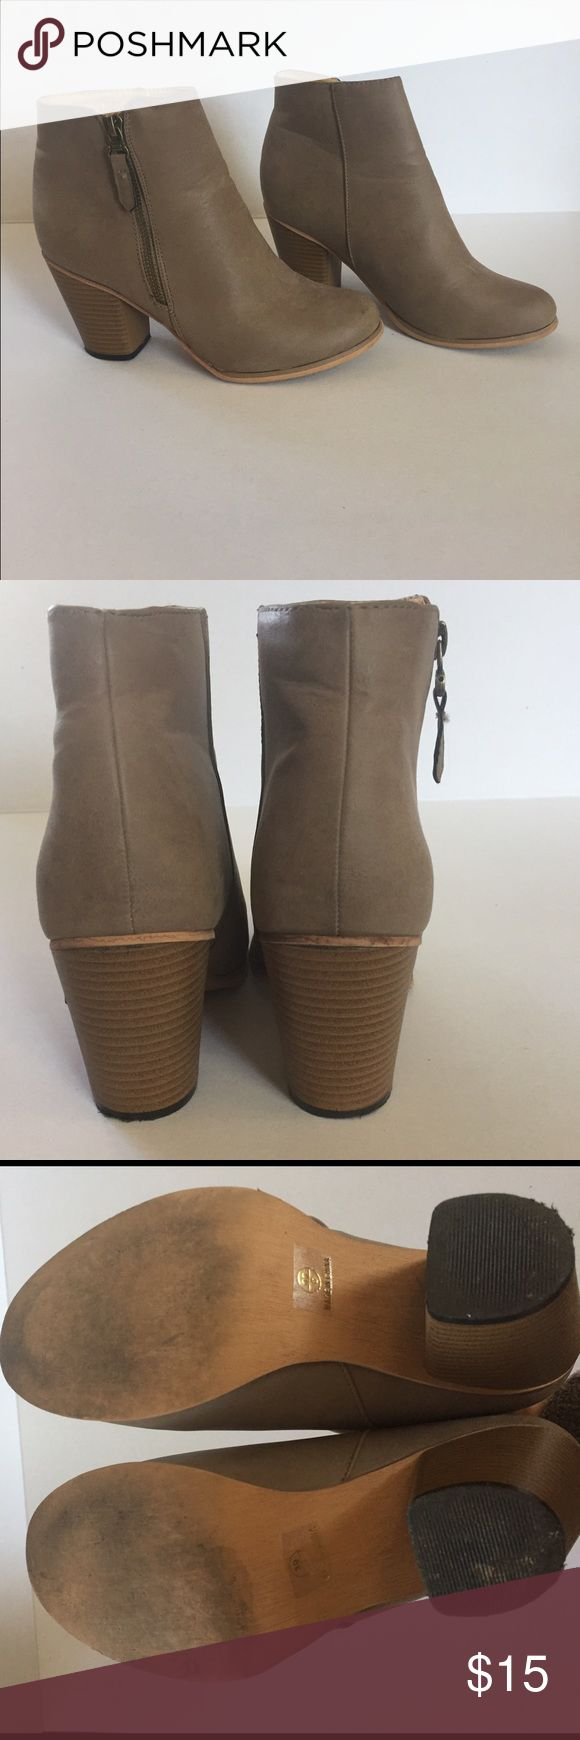 Neutral ankle boots Tan ankle boots with mild wear. Perfect to pair with cuffed jeans or dress! Neutral color goes well with everything. Shoes Ankle Boots & Booties